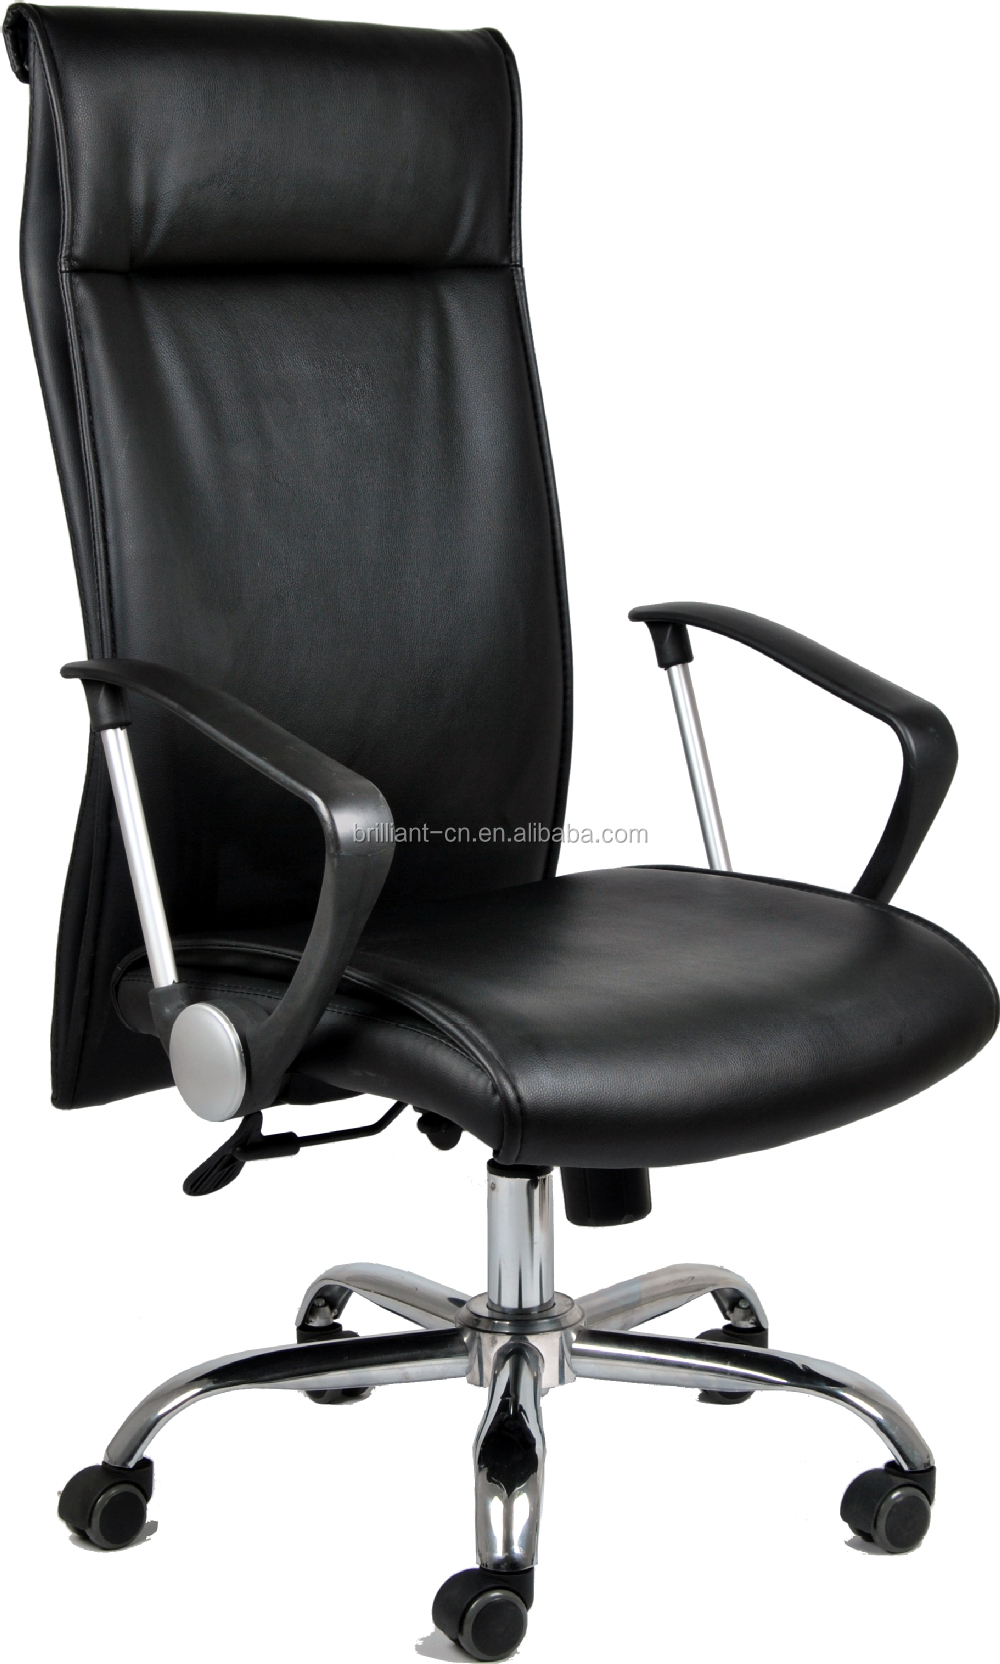 Ergonomic Reading Chair Ergonomic Reading Chair Guest Chair Aeron Office Chair Bf 8106c 1 Buy Aeron Office Chair Guest Chair Ergonomic Reading Chair Product On Alibaba